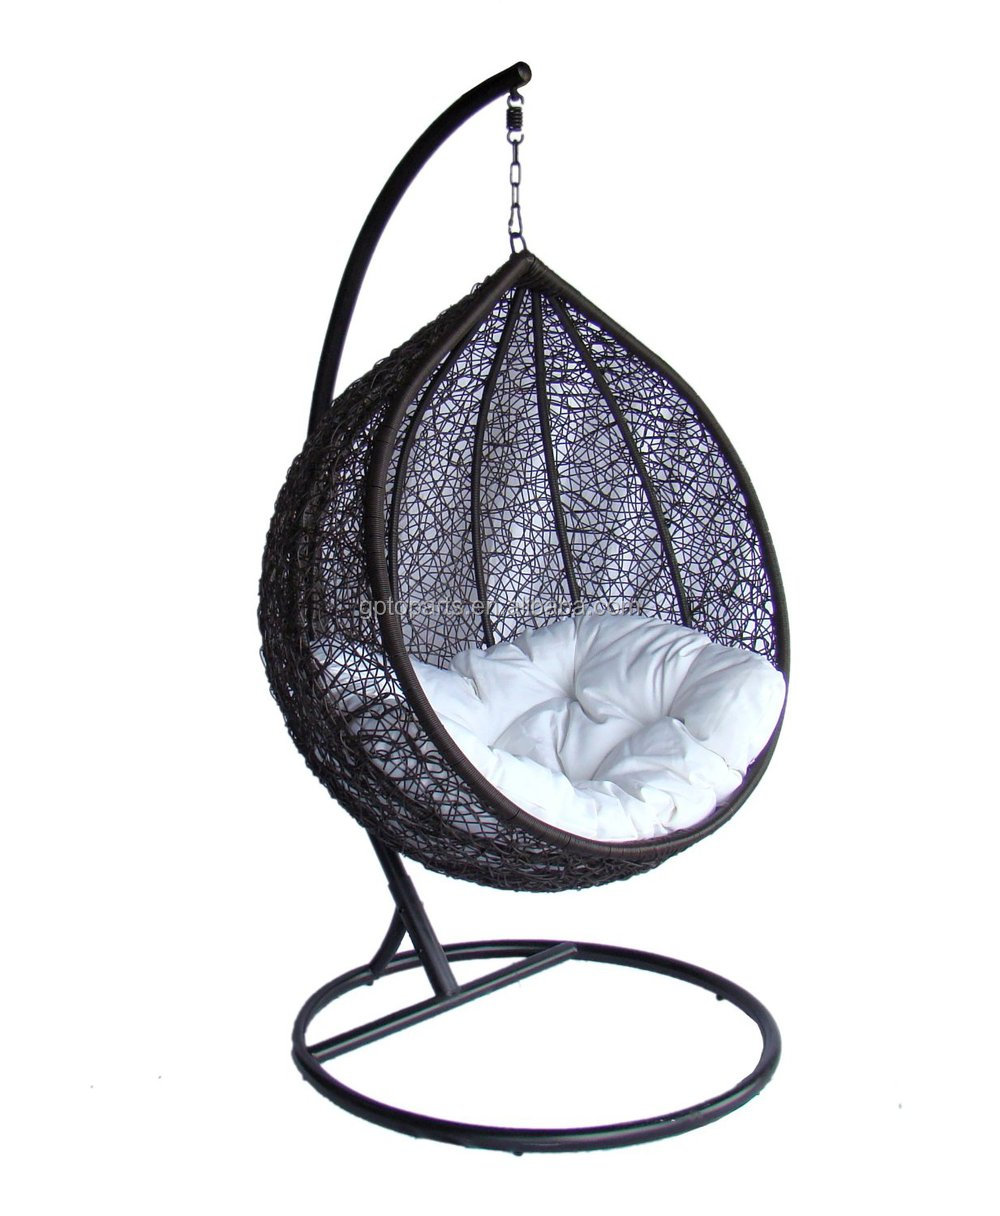 Island Bay Resin Wicker Hanging Egg Chair With Cushion And Stand, Island  Bay Resin Wicker Hanging Egg Chair With Cushion And Stand Suppliers And ...